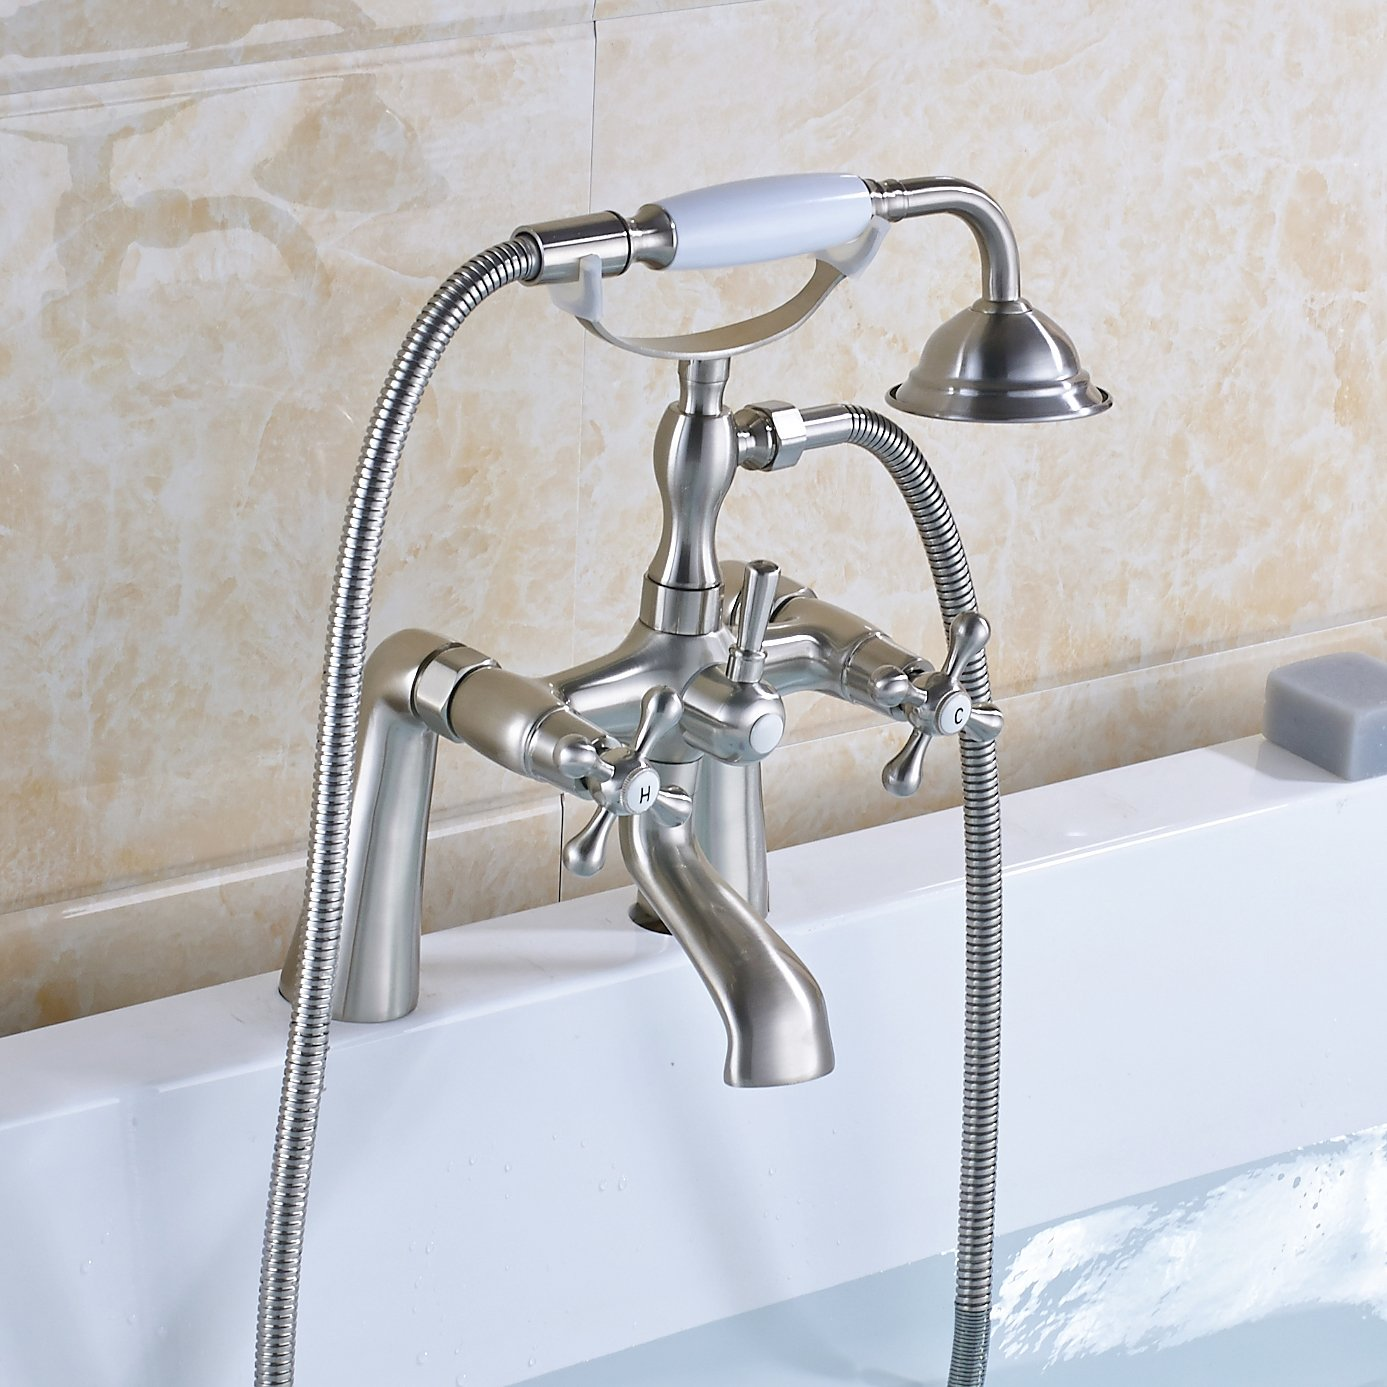 Rozin Deck Mounted 2 Holes Bathtub Filler Faucet with Handheld ...